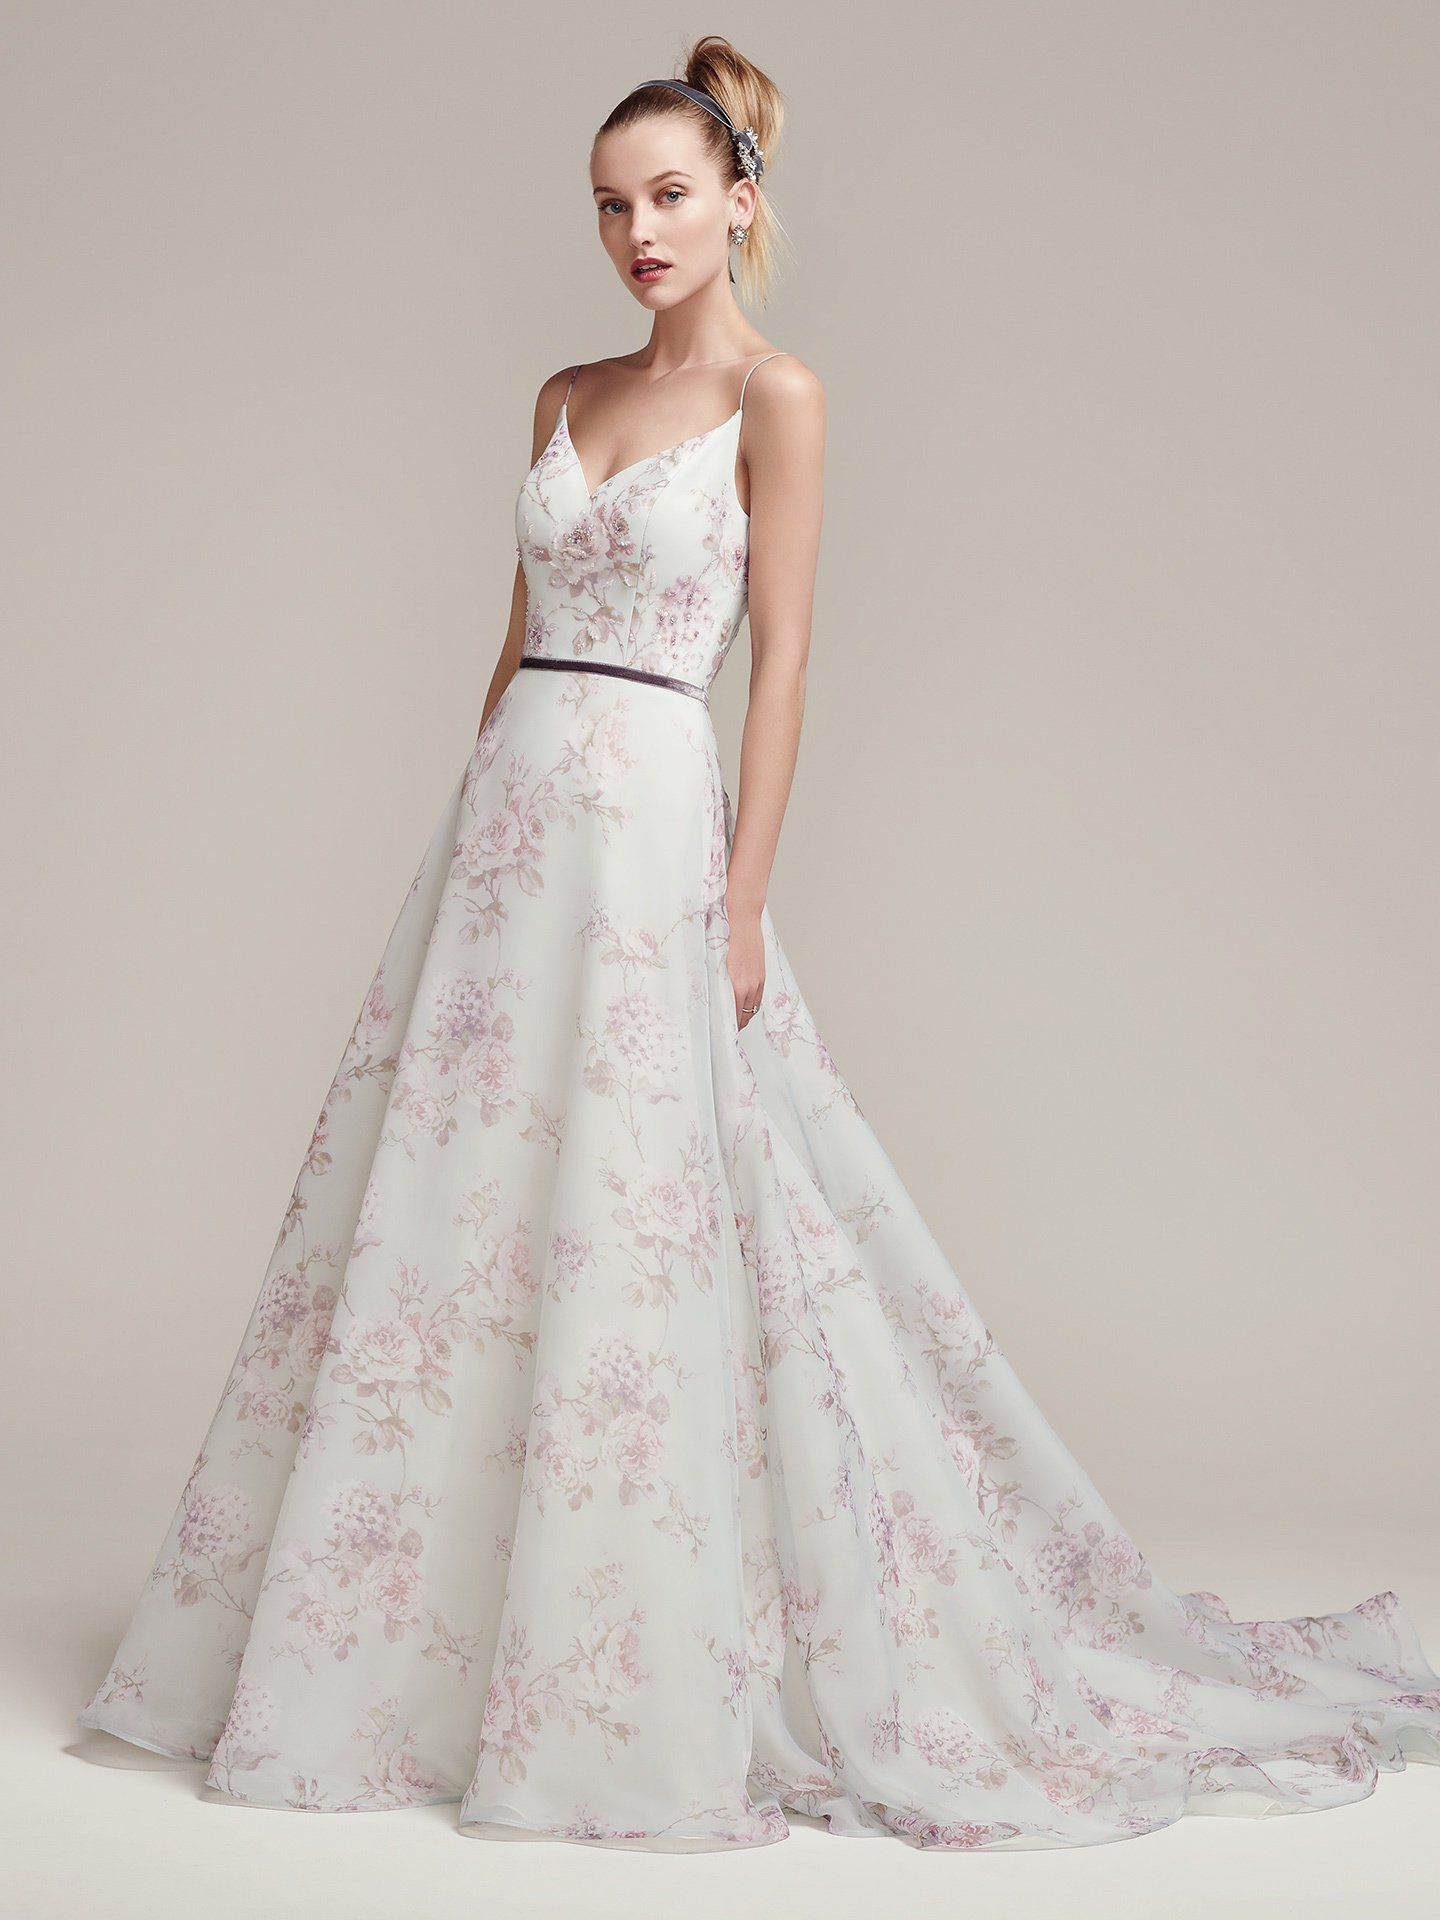 Pastel and floral gowns by maggie sottero designs ribbon for Floral dresses for weddings